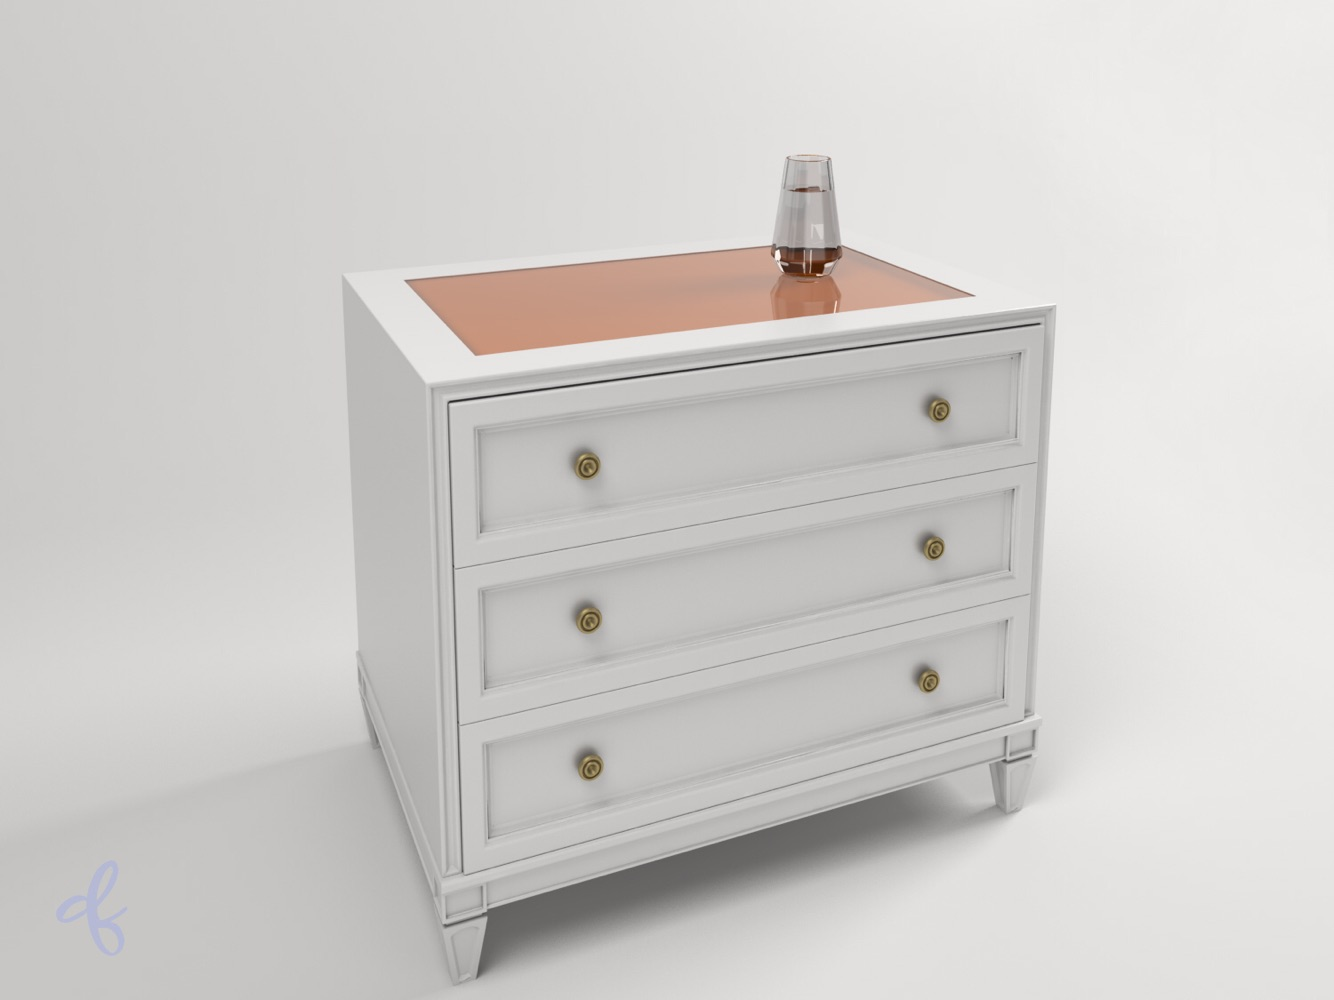 Marla side table